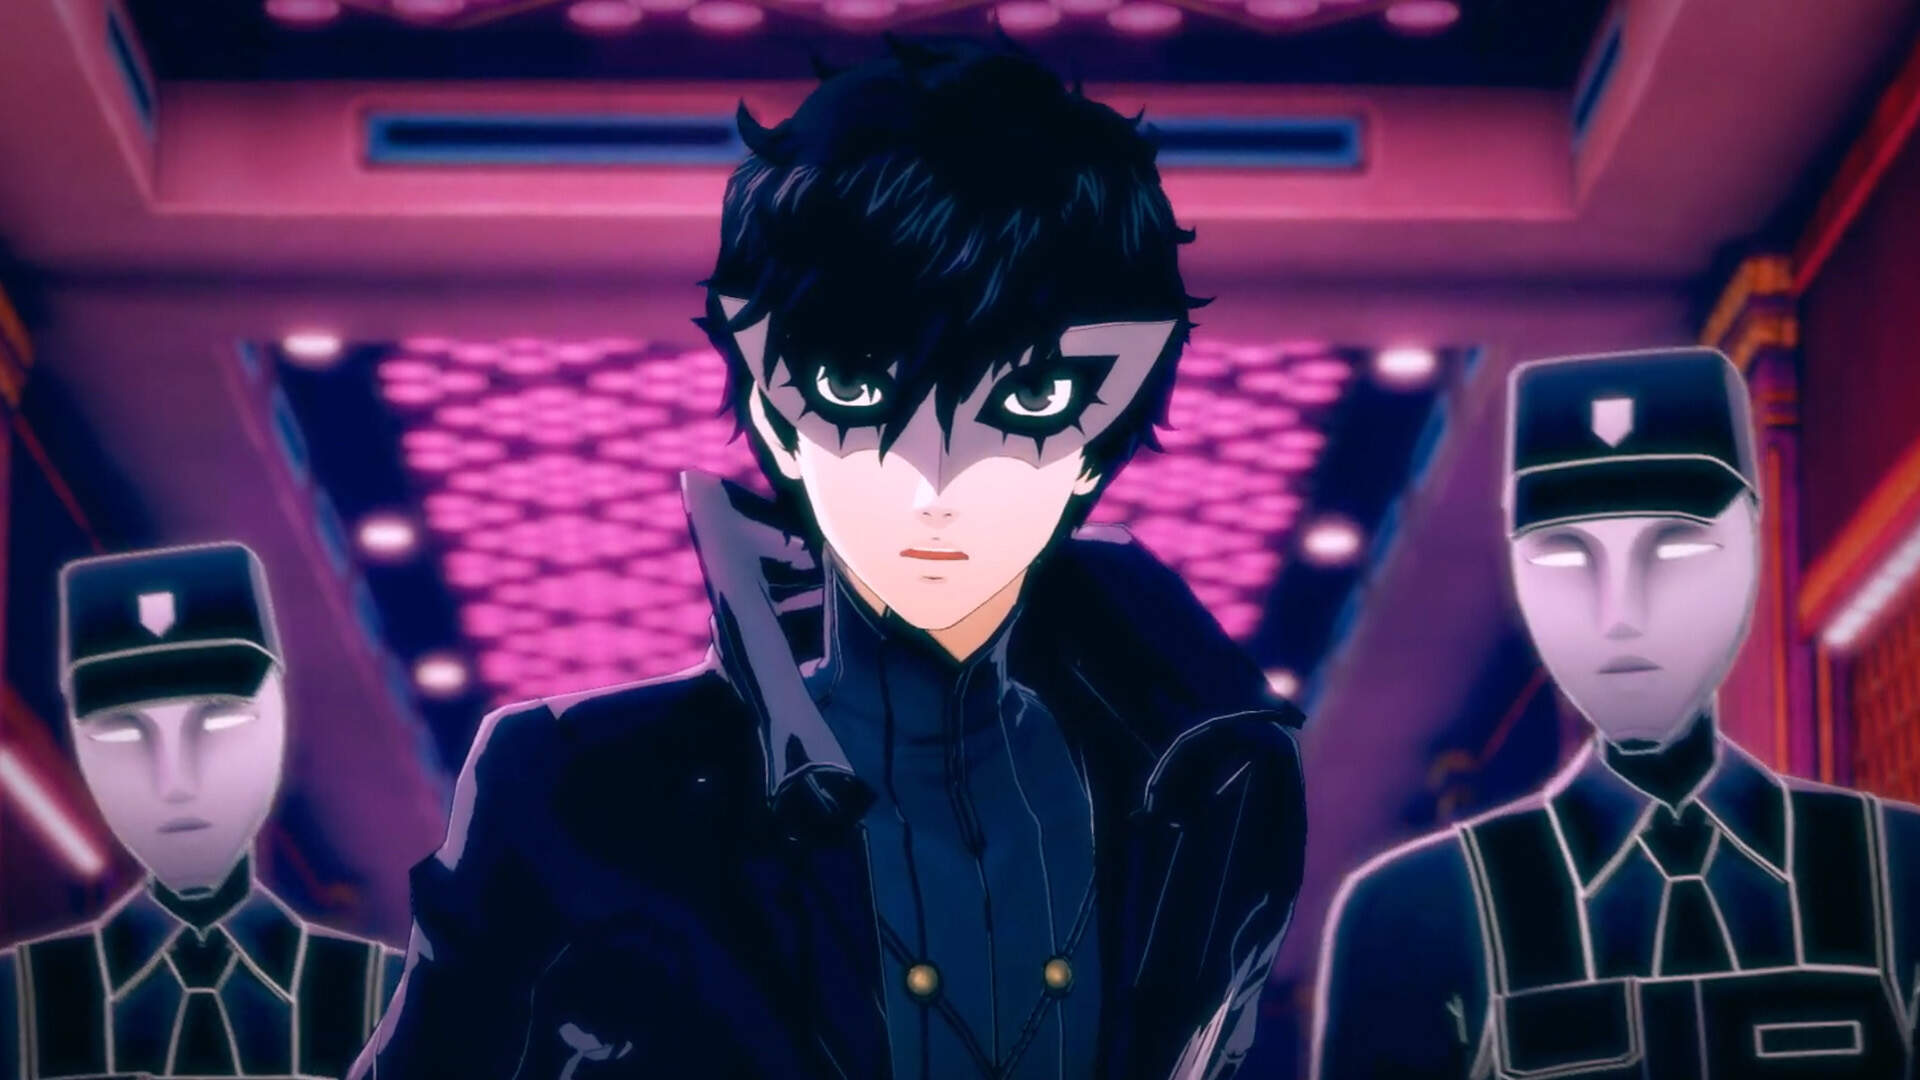 Calling Persona 5 Scramble a Spin-Off Doesn't Quite Do It Justice